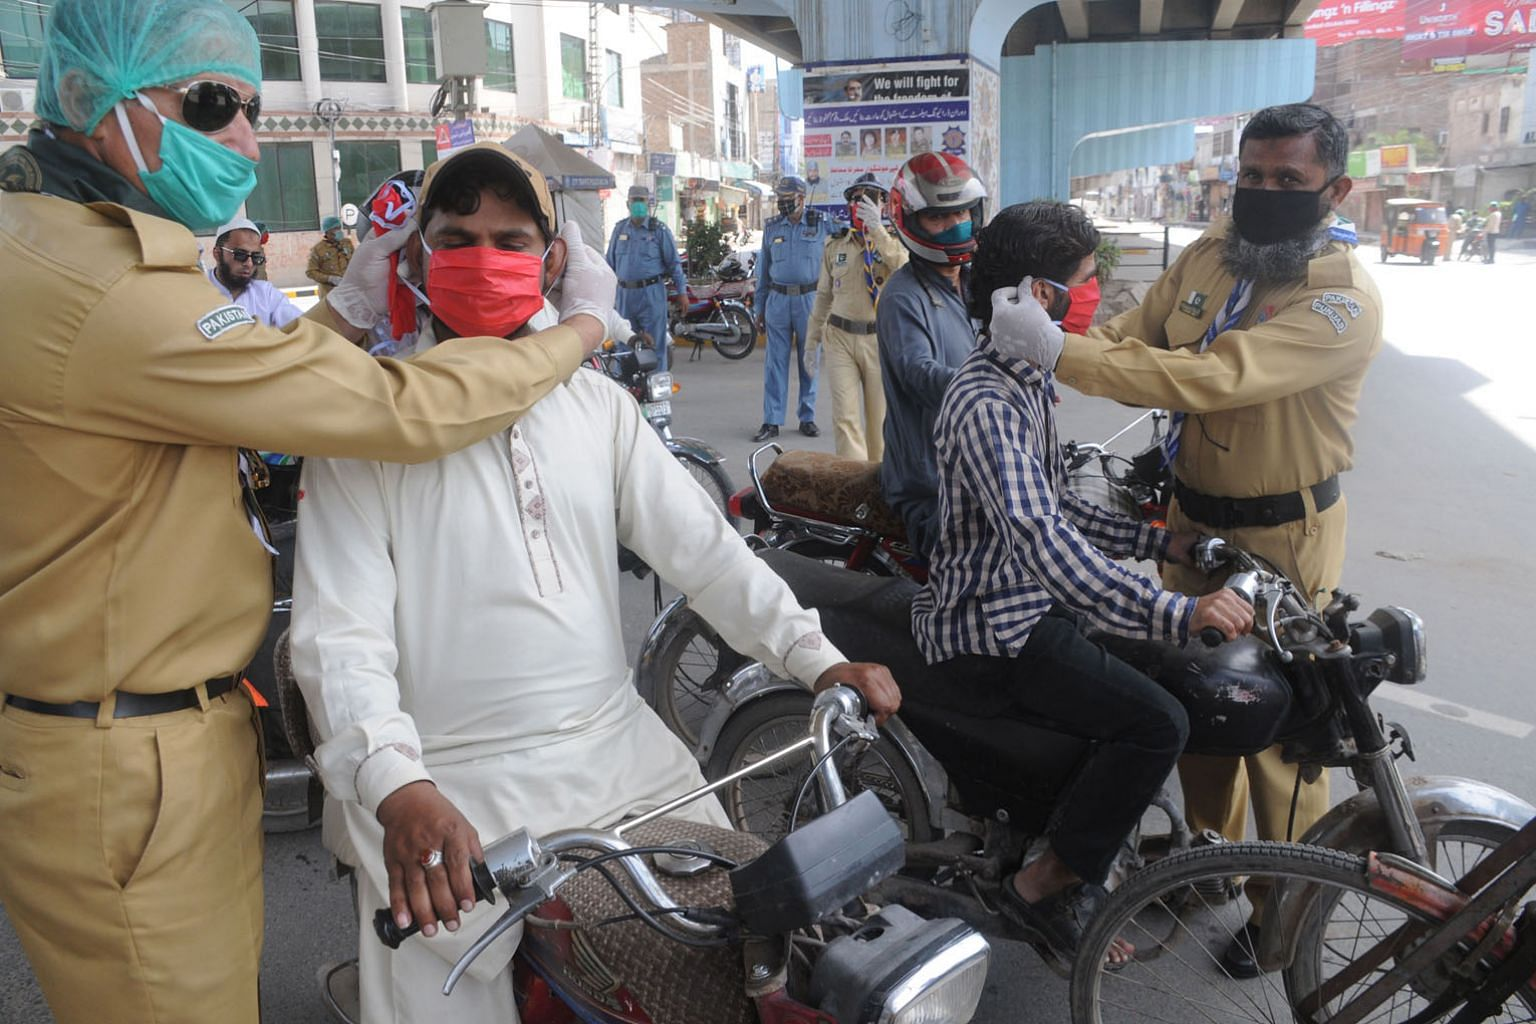 Volunteers distributing face masks to people during a partial lockdown in Multan, Pakistan, on Sunday. Public health infrastructure in India, Pakistan or any number of sub-Saharan African countries is already struggling to cope, even at this relative